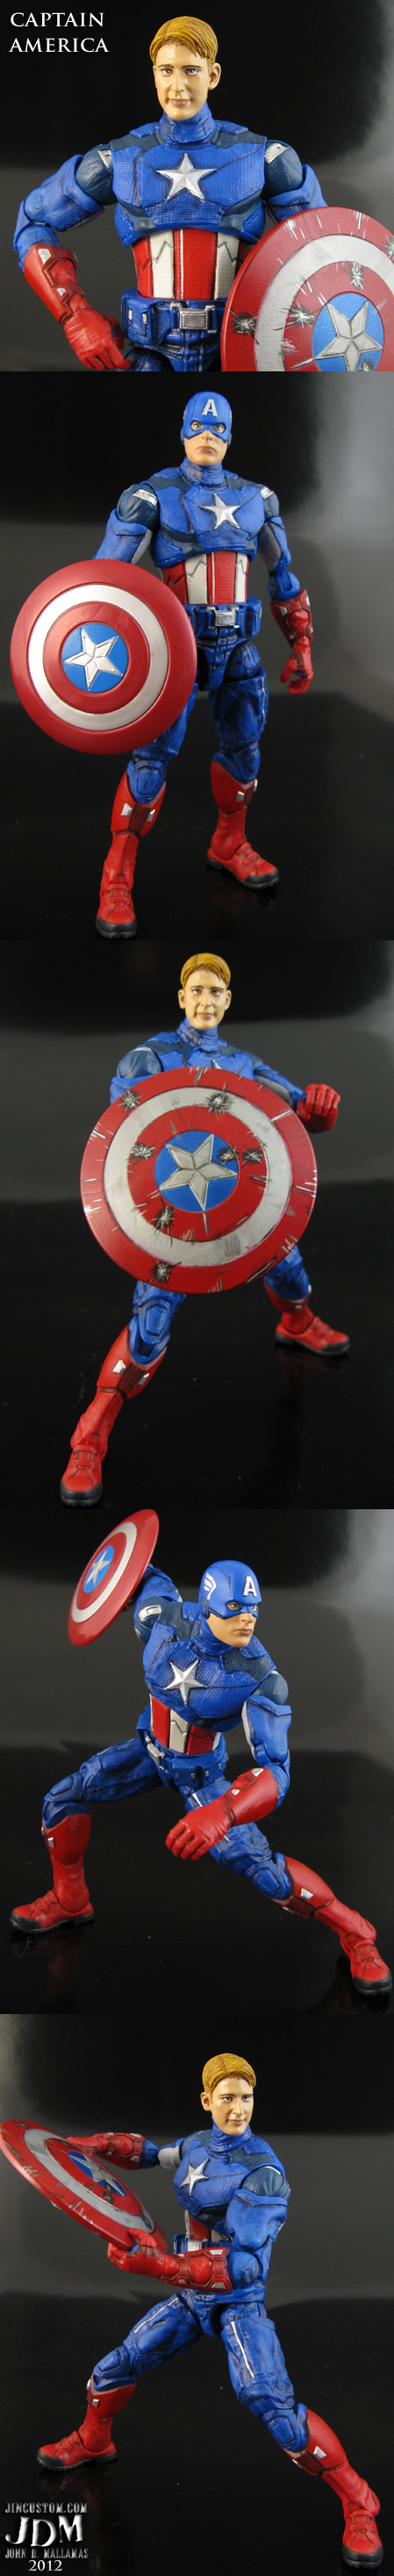 Custom Captain America Avengers movie figure by Jin-Saotome